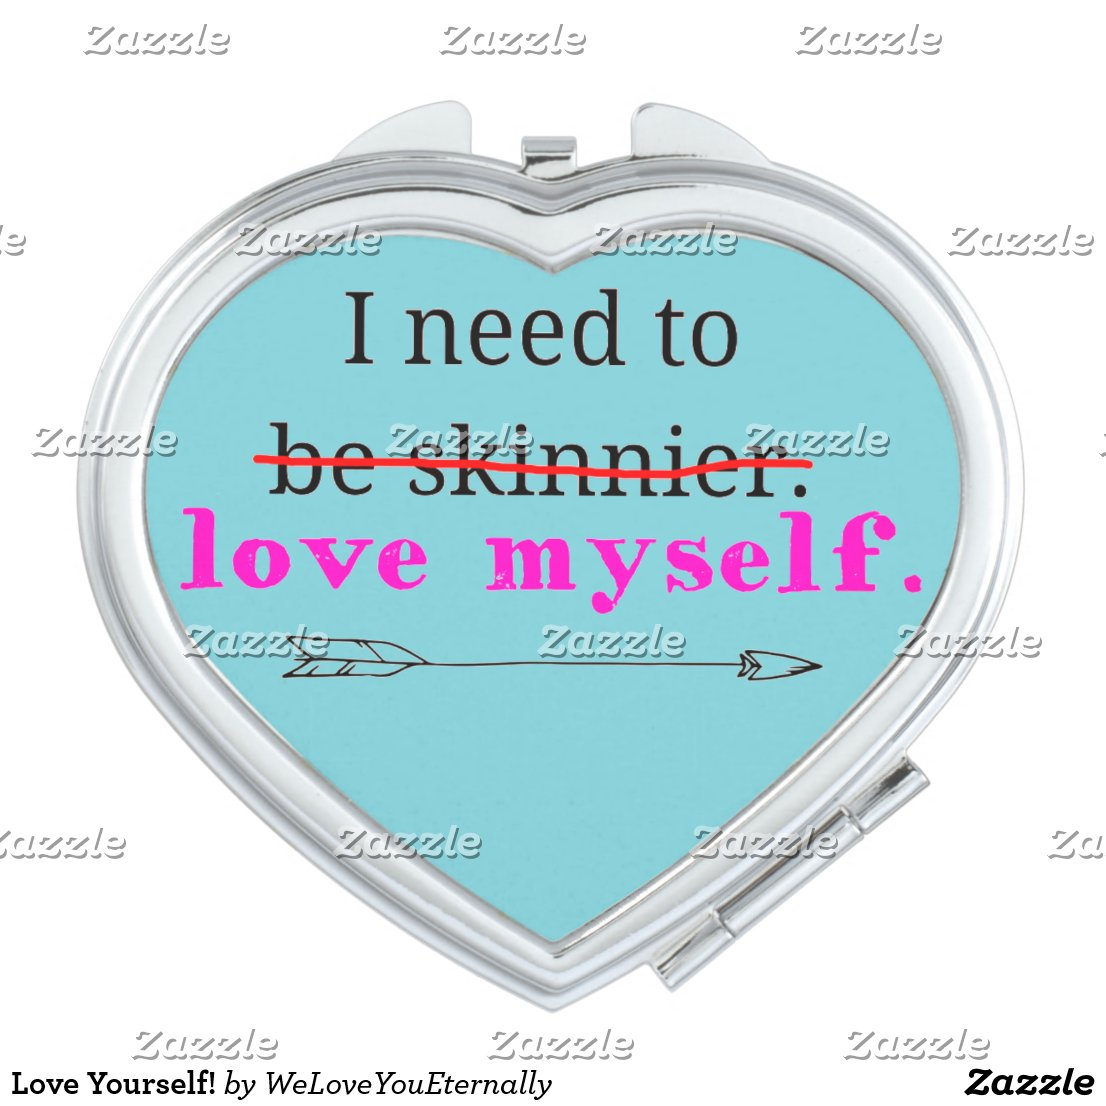 Love Yourself! Compact Mirror